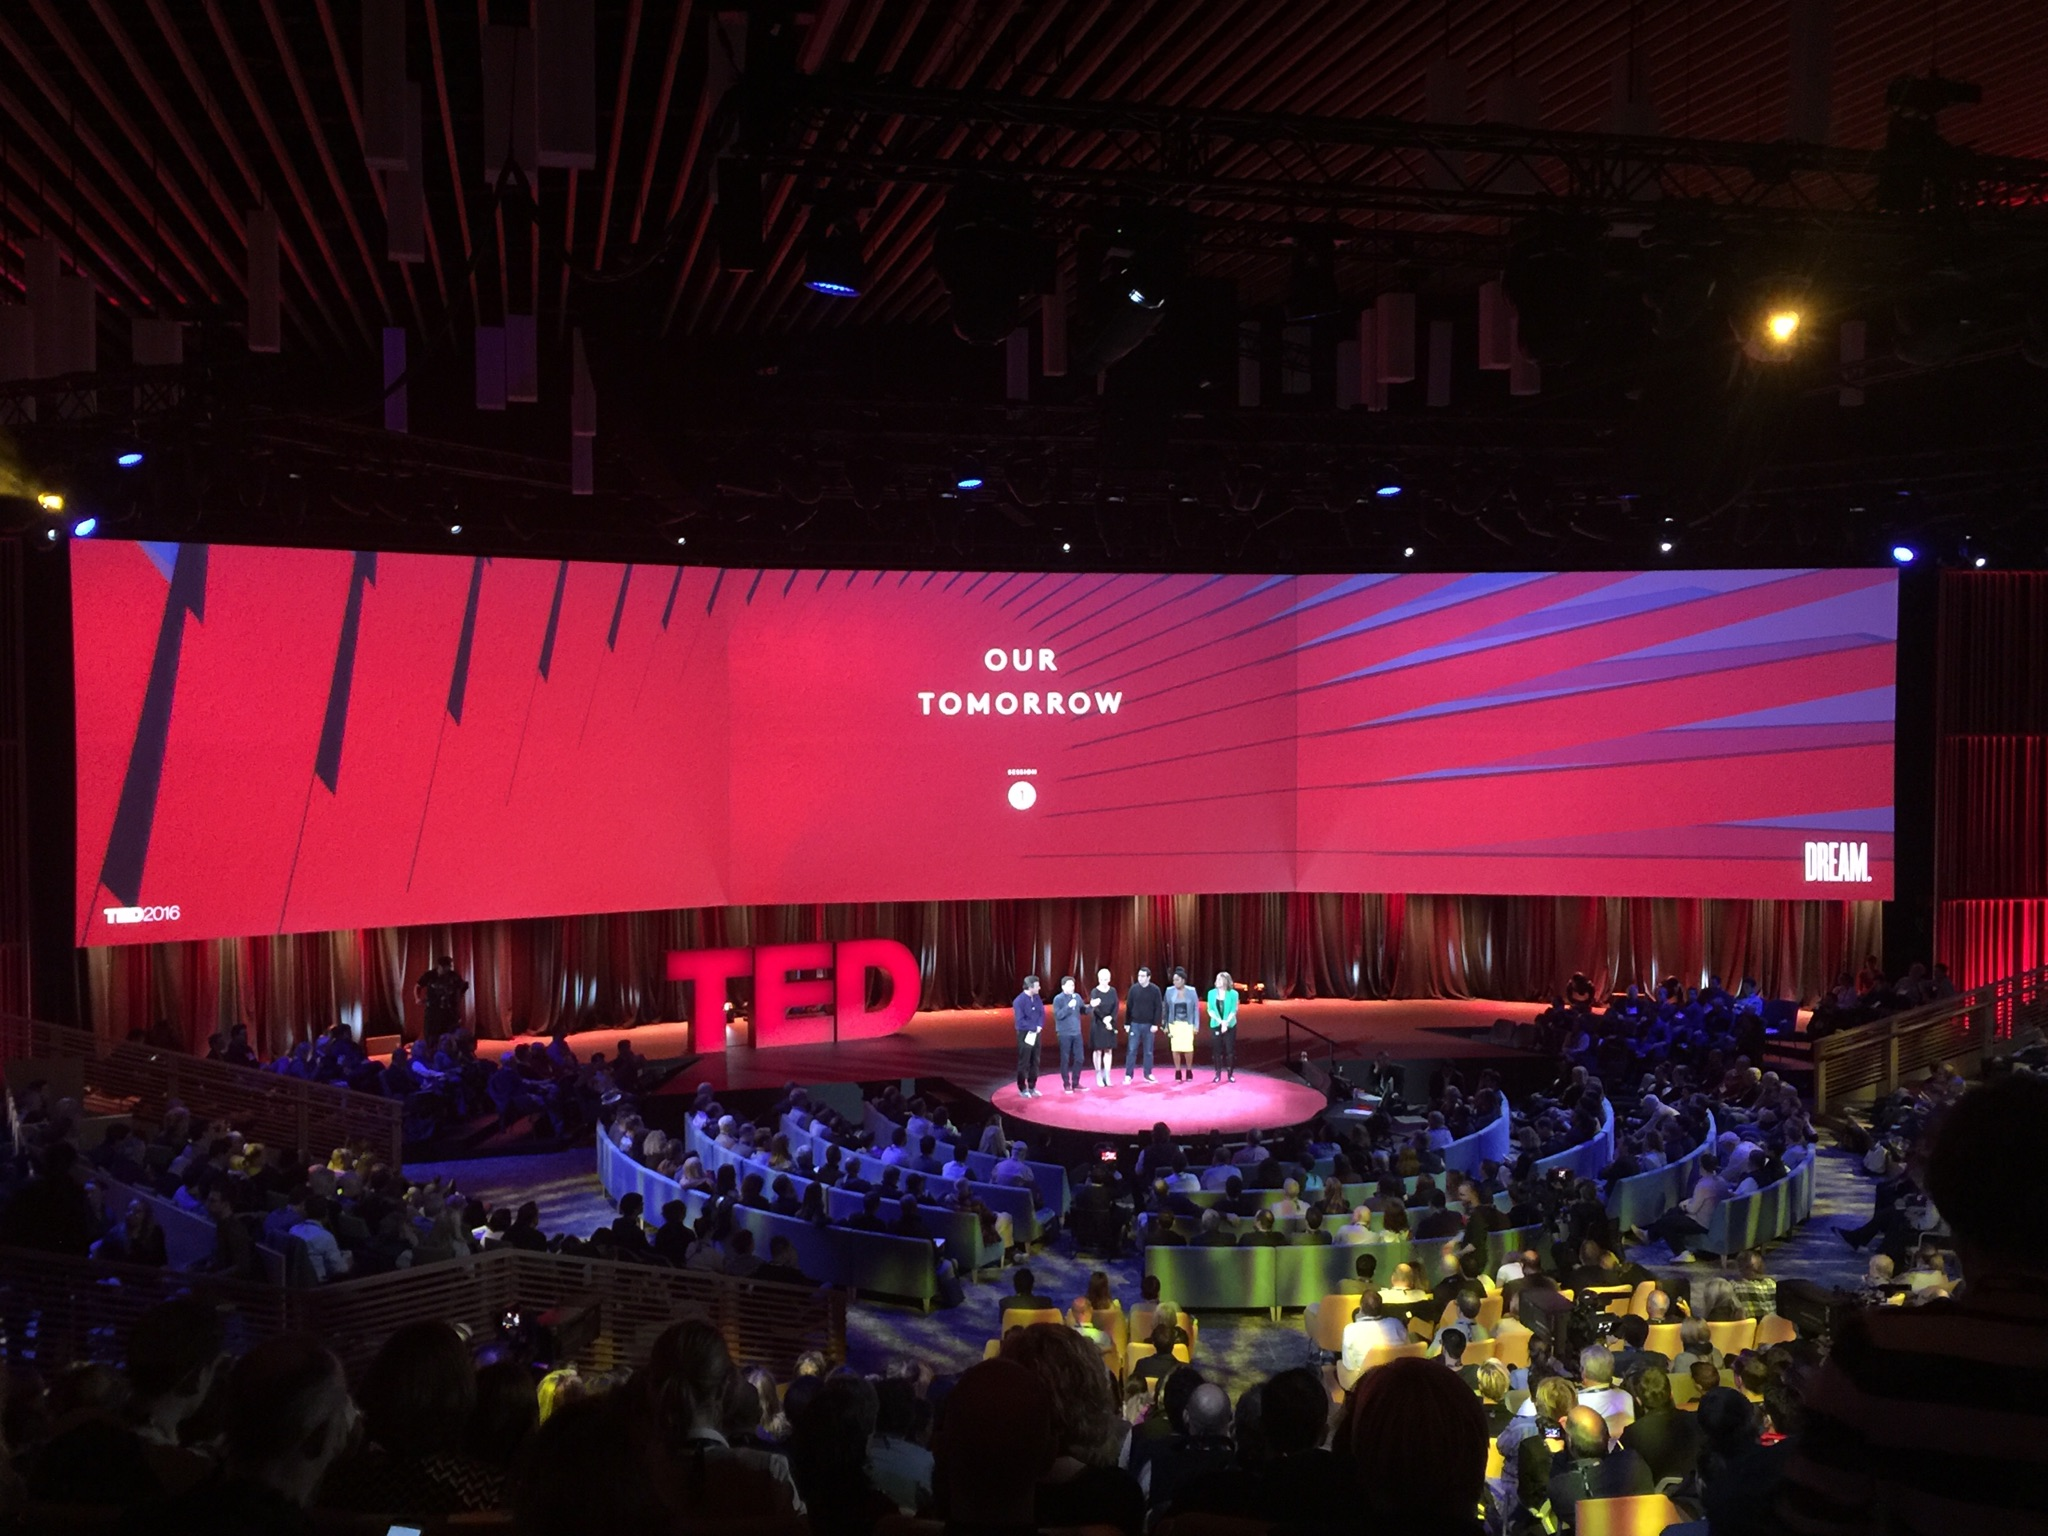 TED 2016 Dream: Leadership Insights From Day 1 - by TINYpulse